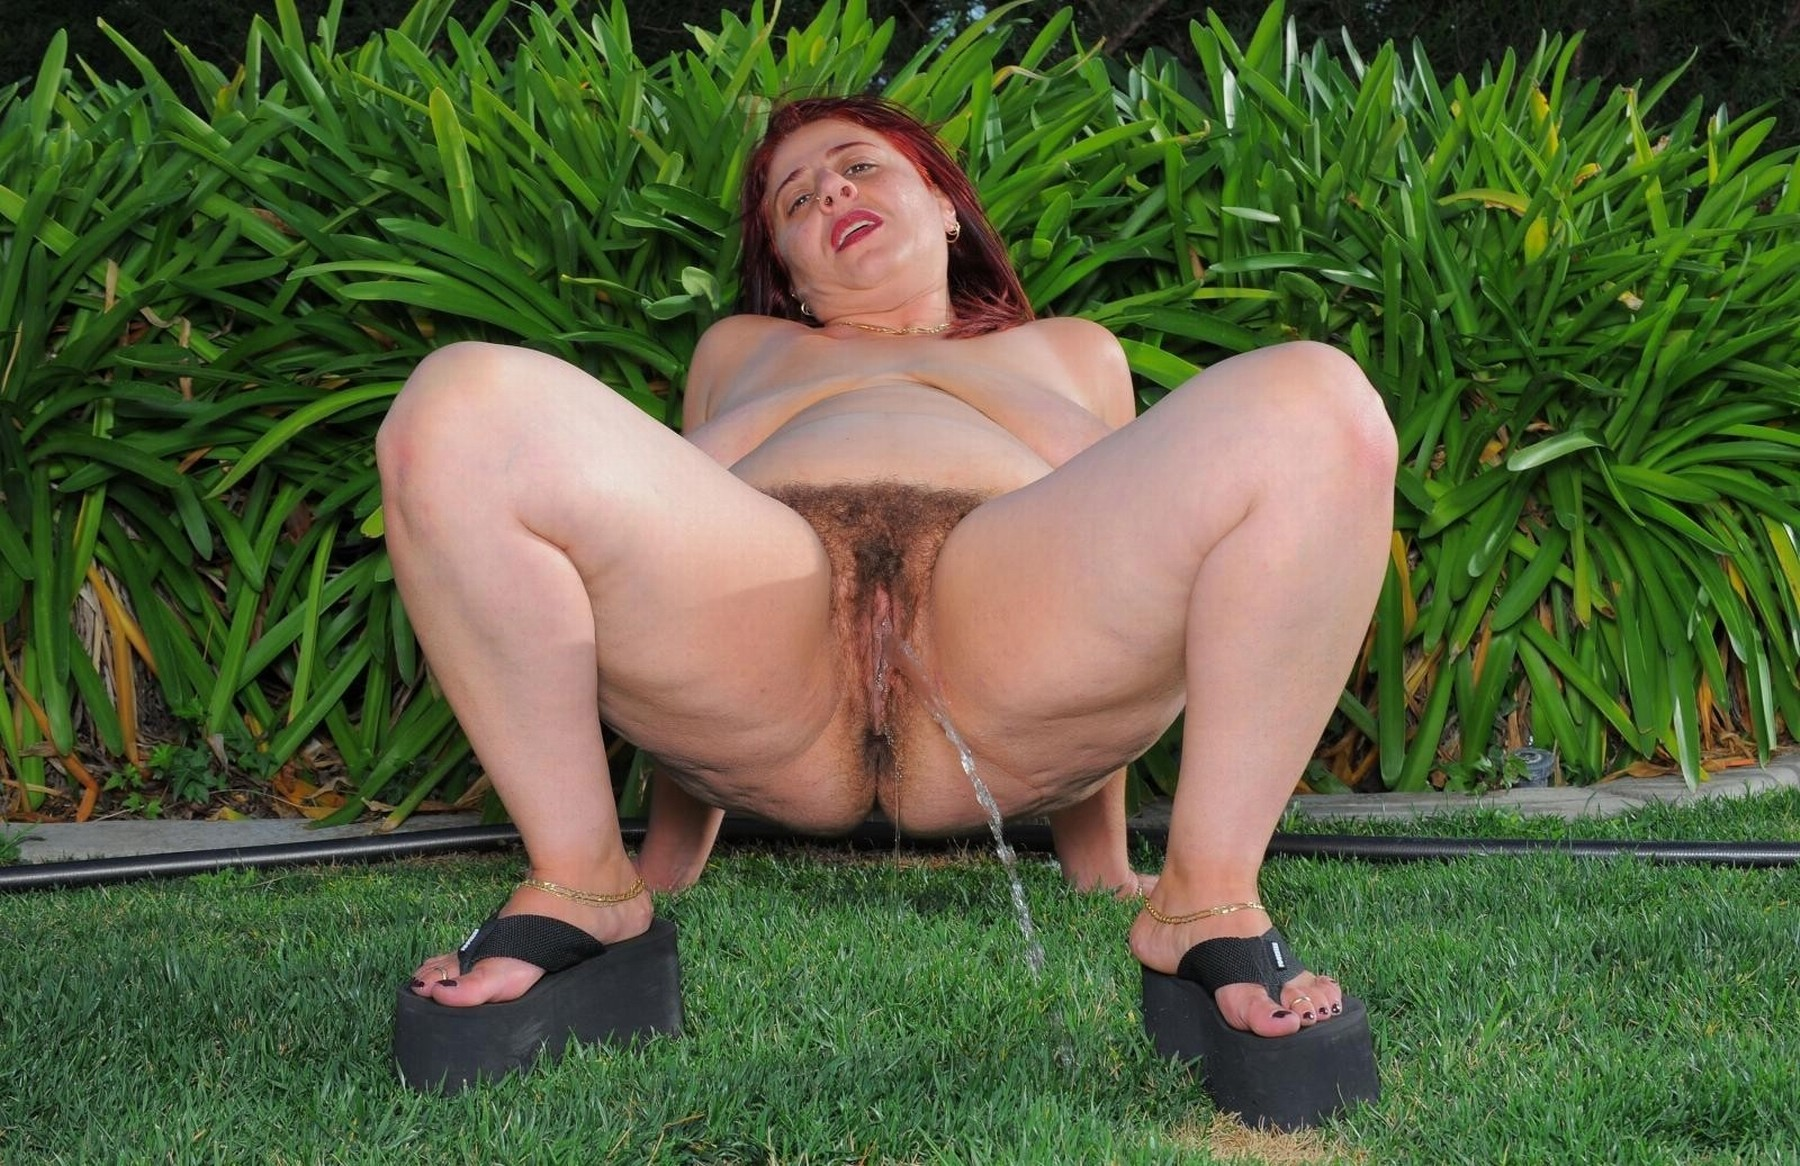 live-fat-women-pissing-nude-video